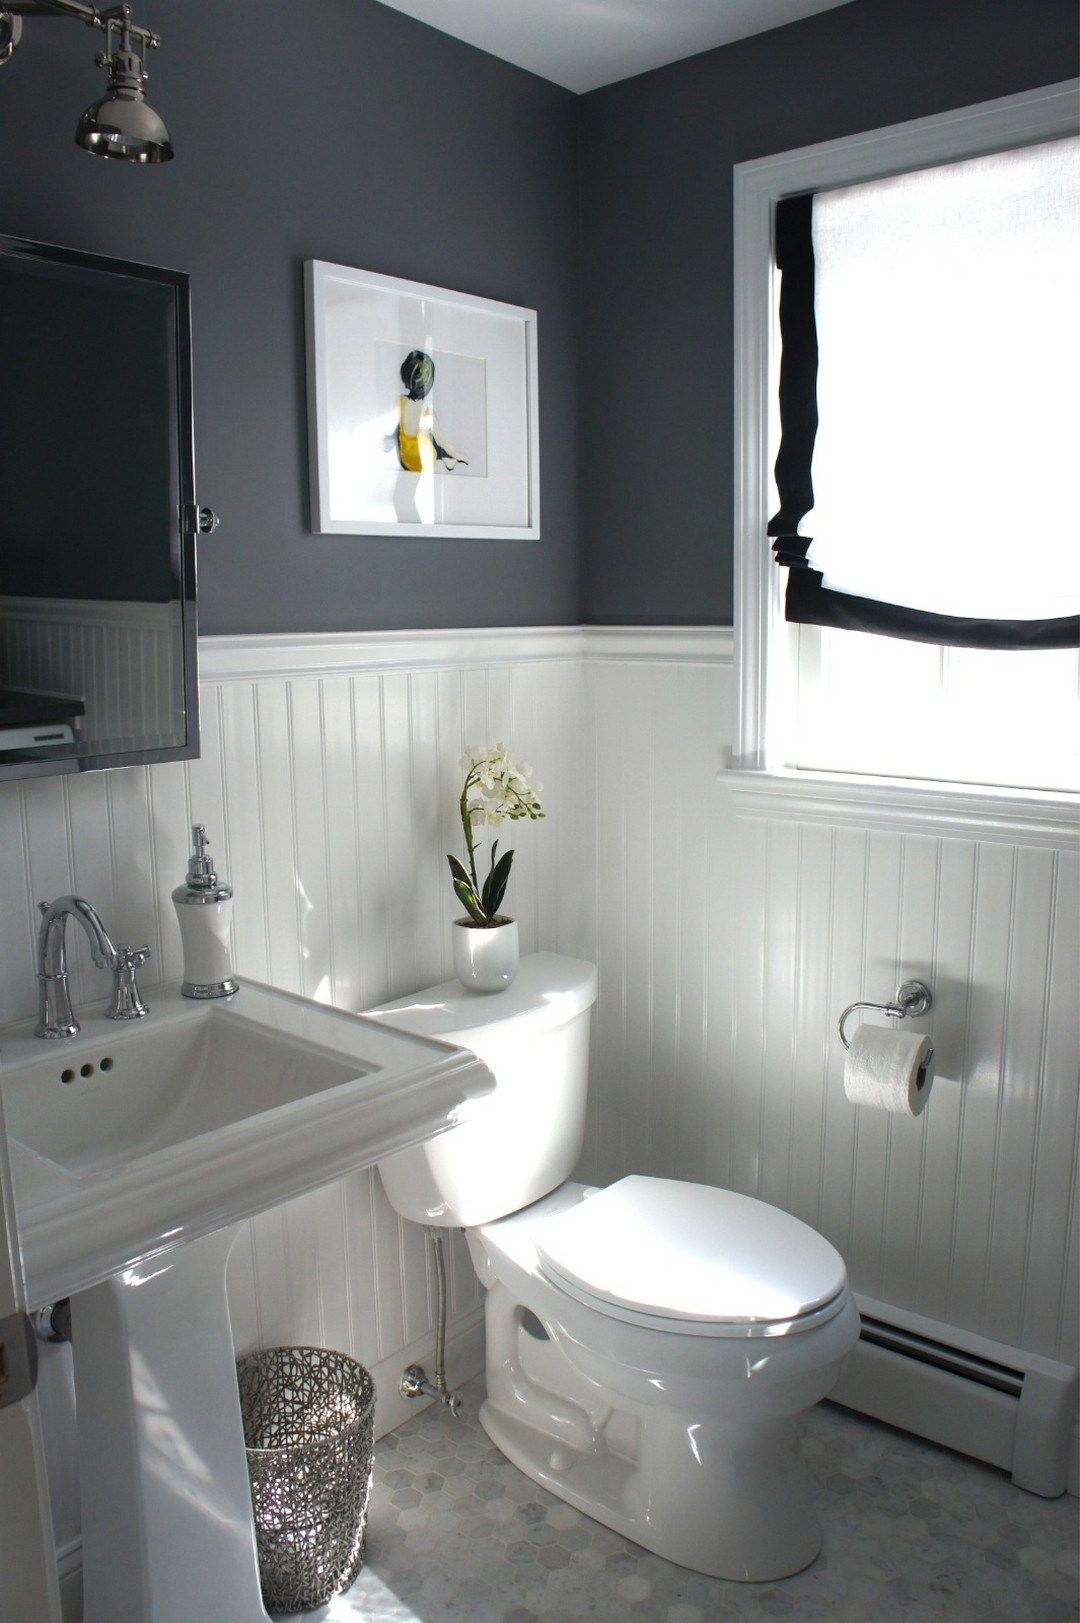 99 small master bathroom makeover ideas on a budget 48 my board pinterest master - Small bathroom pics ...